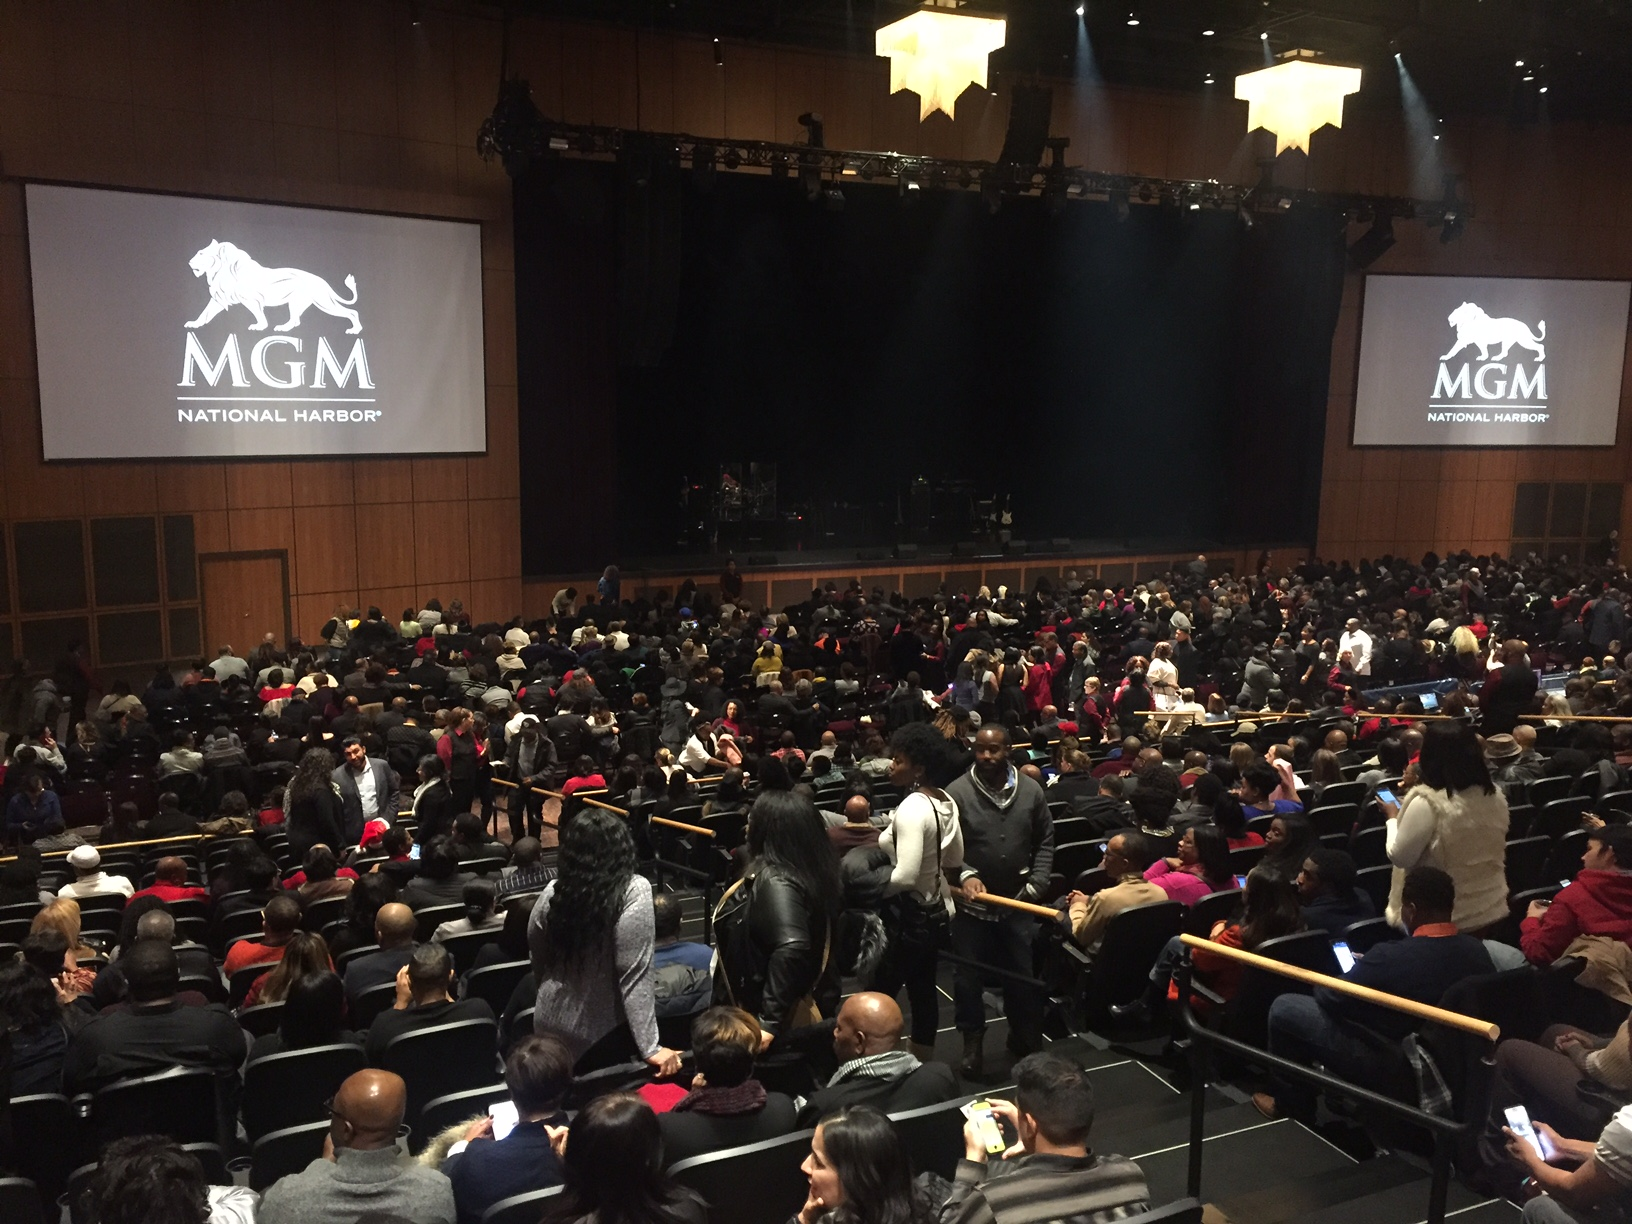 A capacity crowd of about 4,000 on Dec. 16 welcomed Boyz II Men at The Theater at MGM National Harbor. (WTOP/Michelle Murillo)